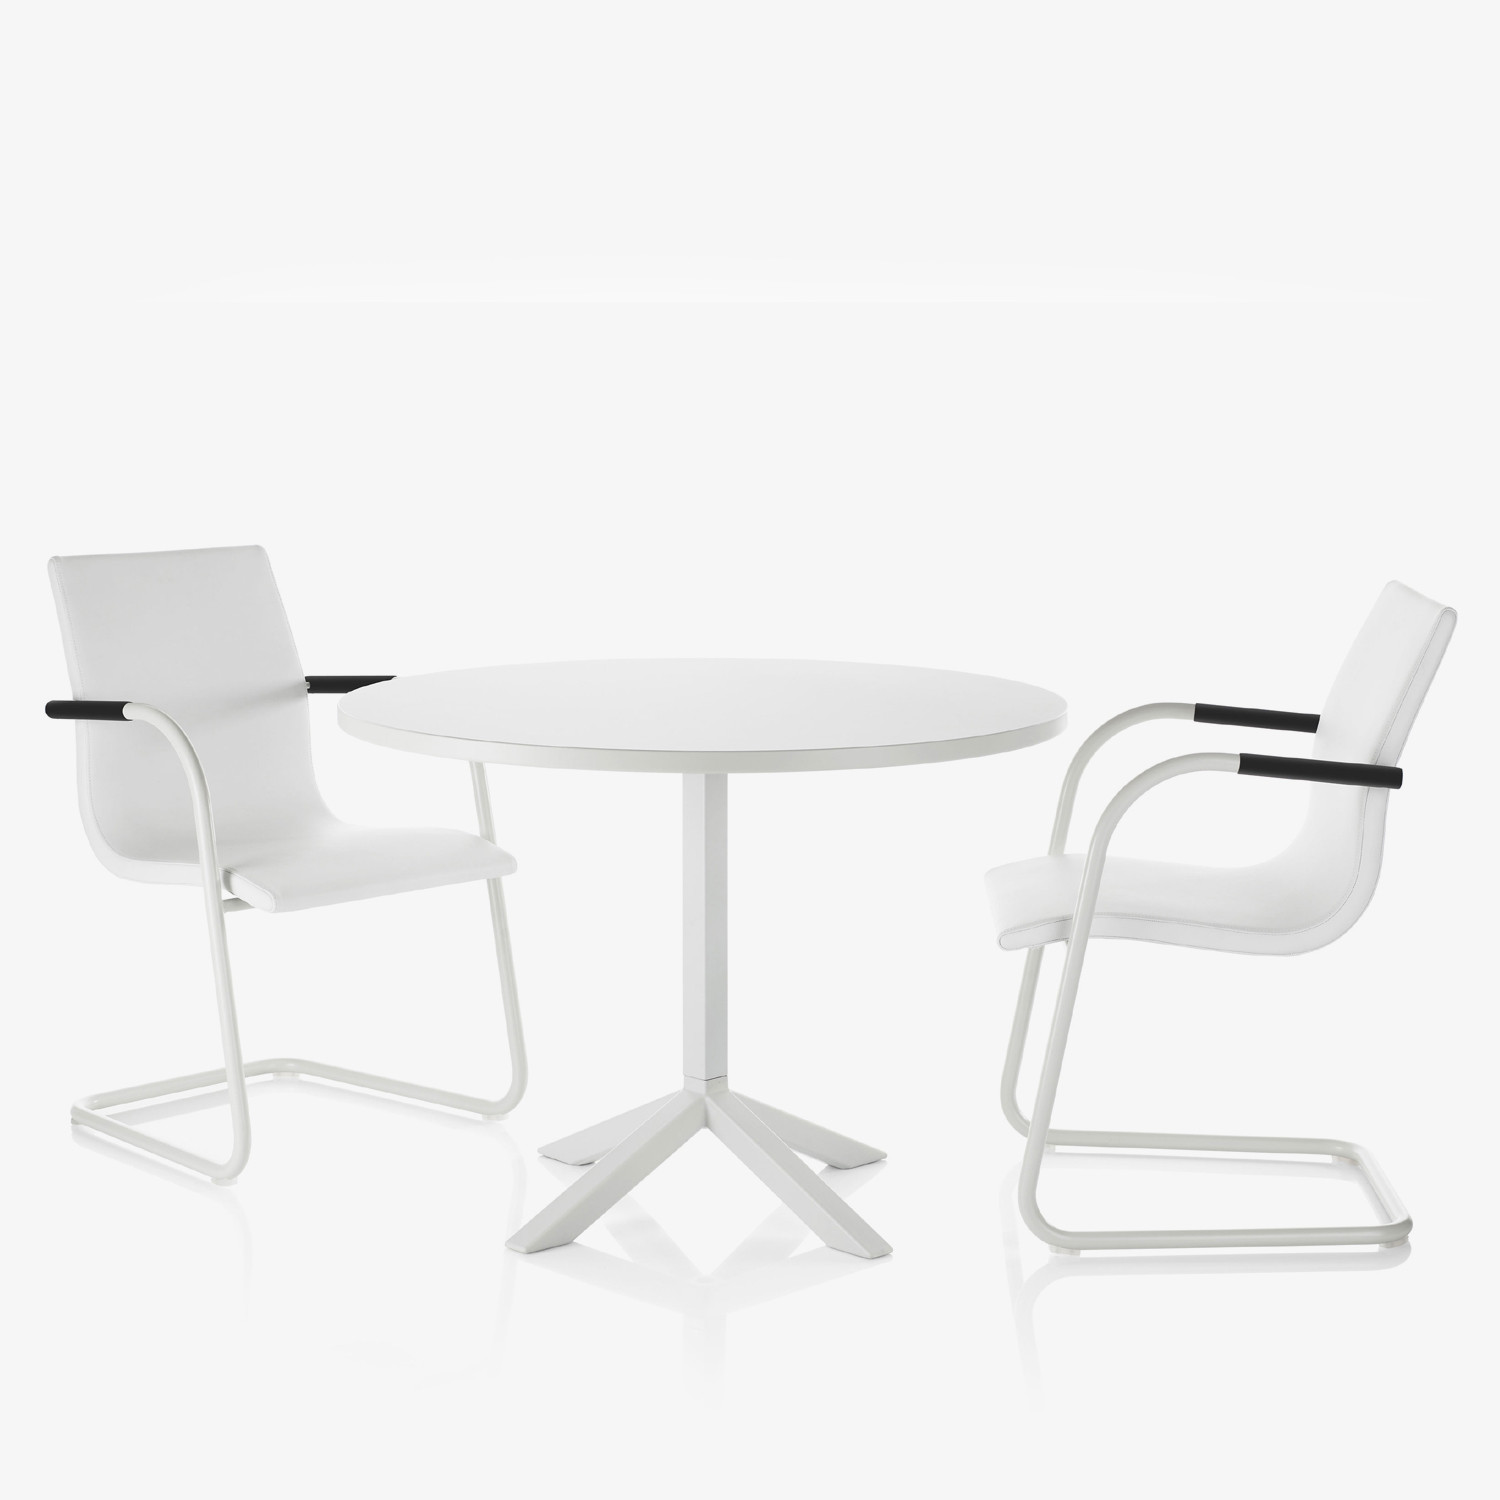 Atlas Cantilever Chairs